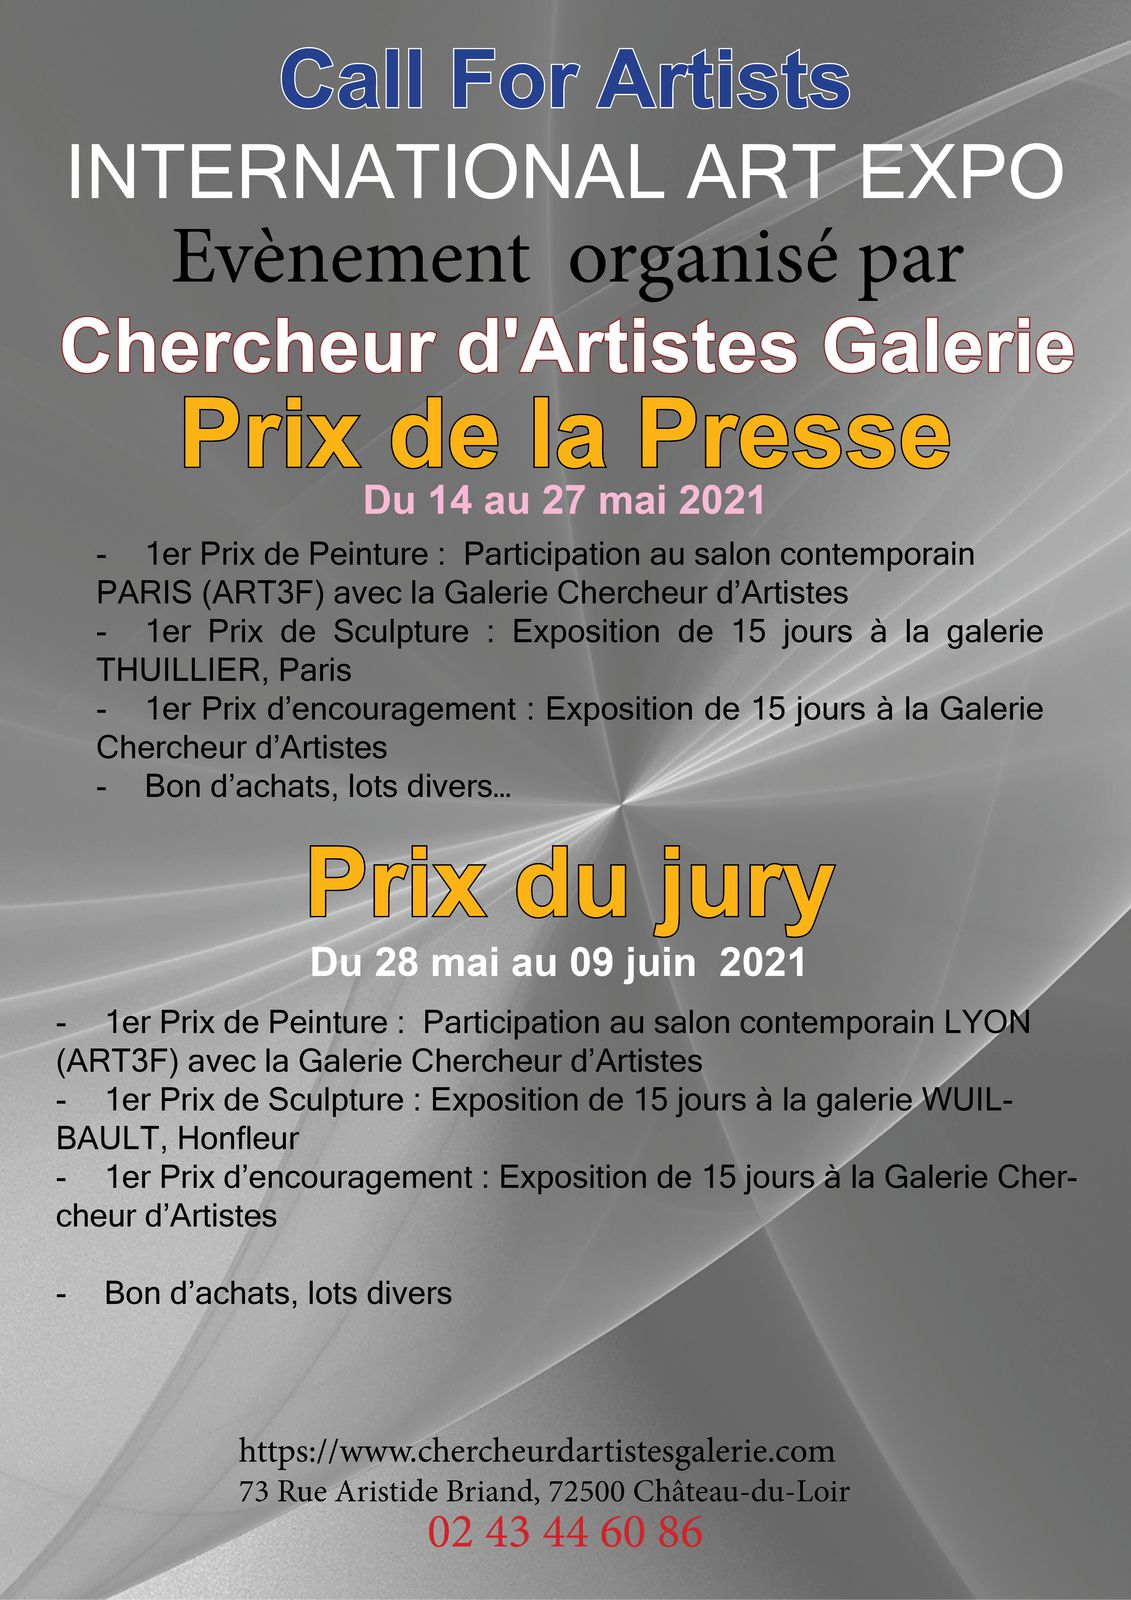 Chercheur d'Artistes Galerie INTERNATIONAL ART EXPO